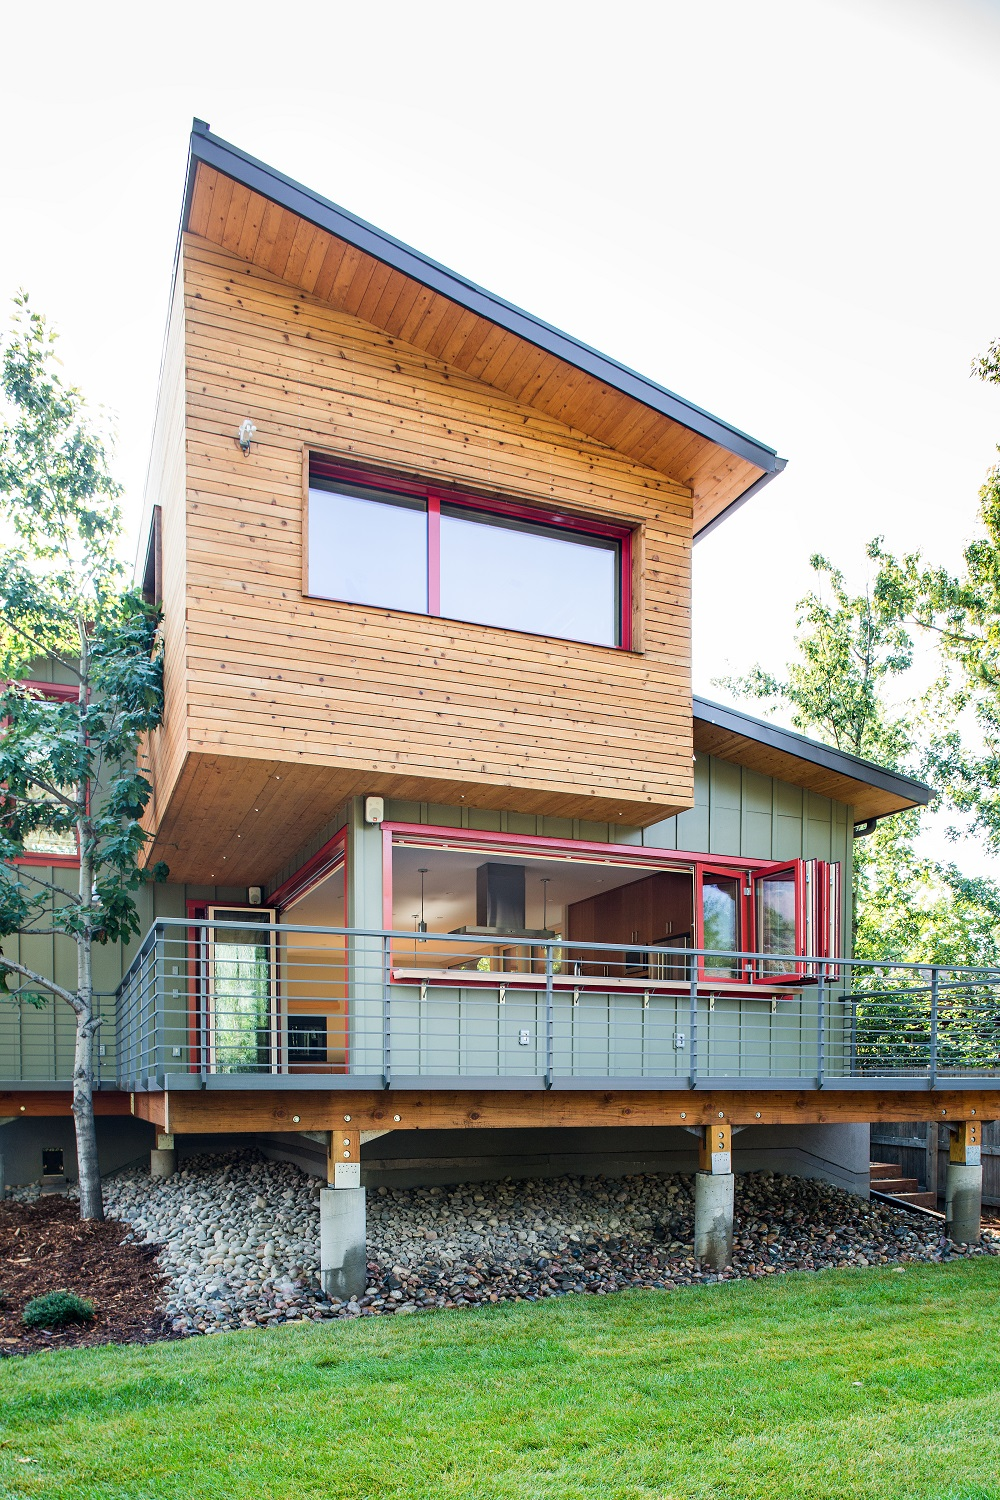 S.33rd-St-Ext-West-Elevation (1500)